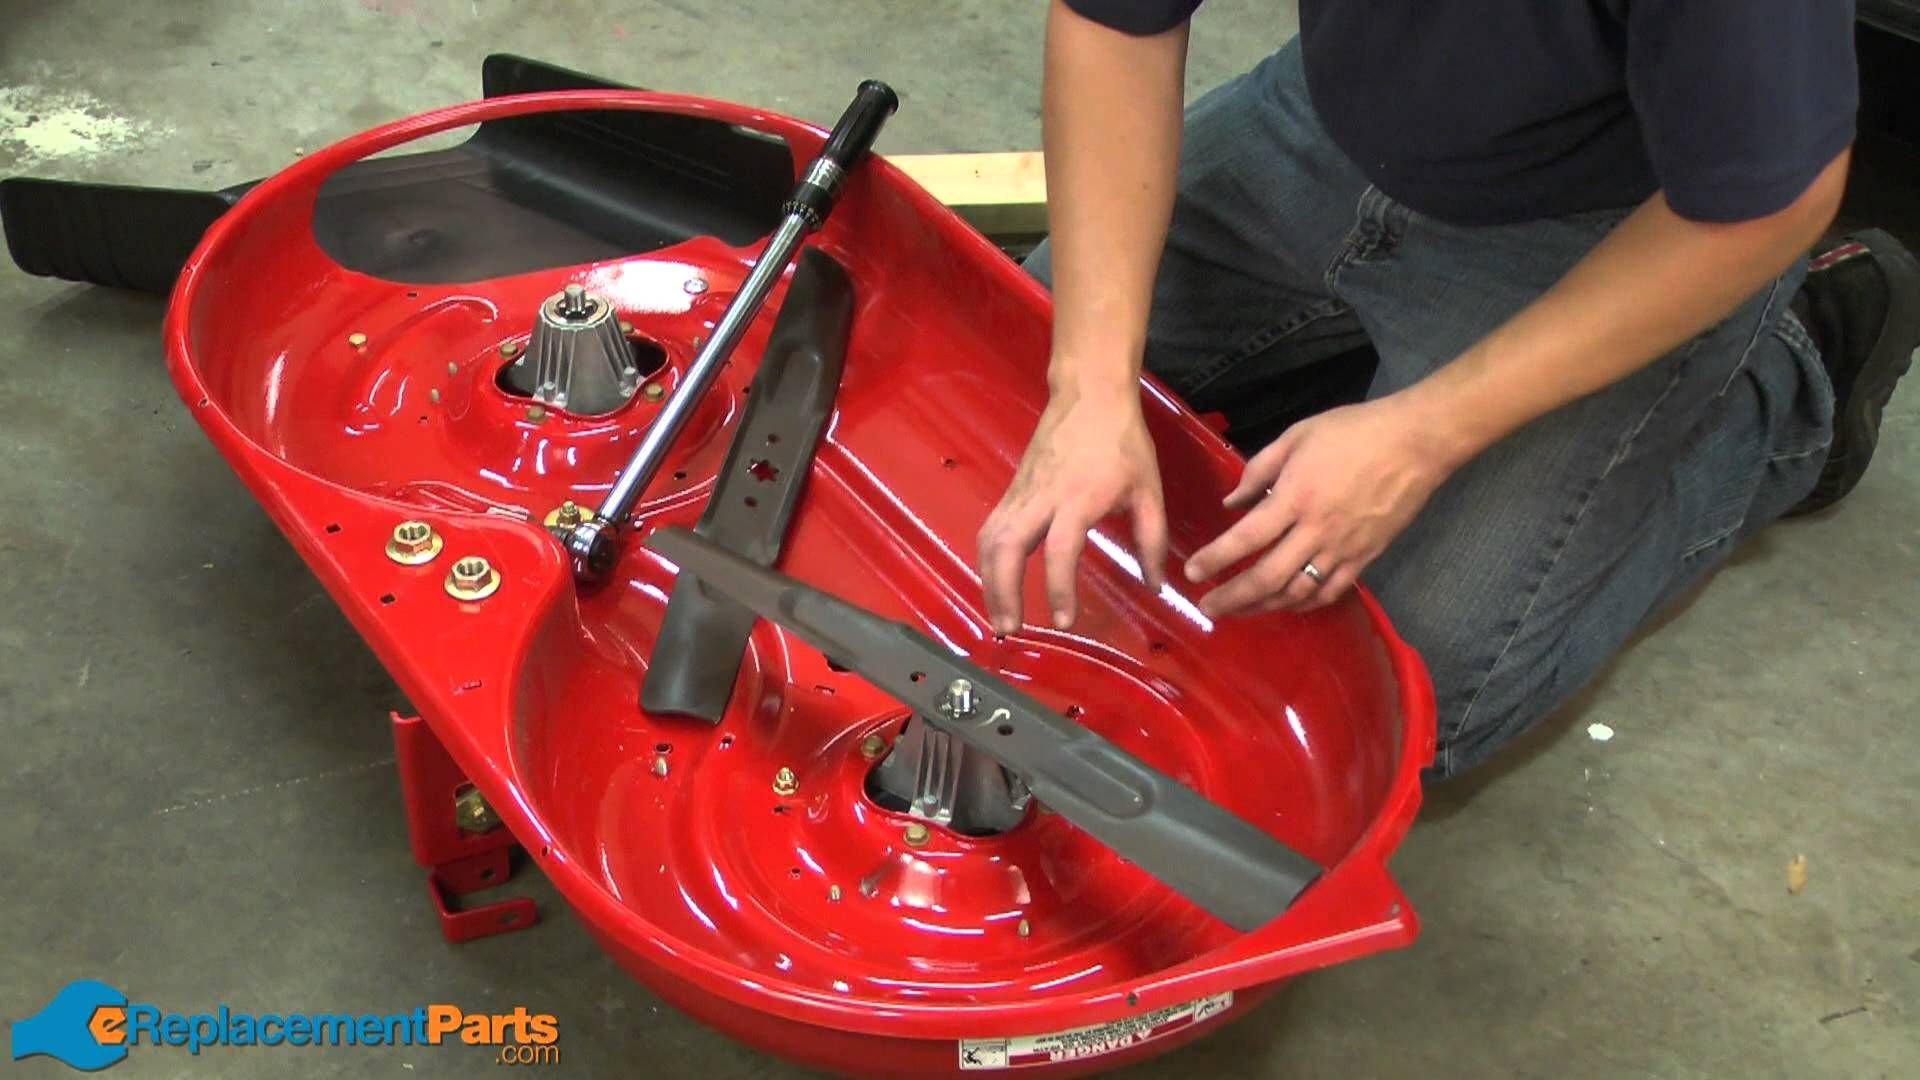 How To Sharpen The Blades On A Lawn Tractor Lawn Tractor Tractors Lawn Mower Maintenance